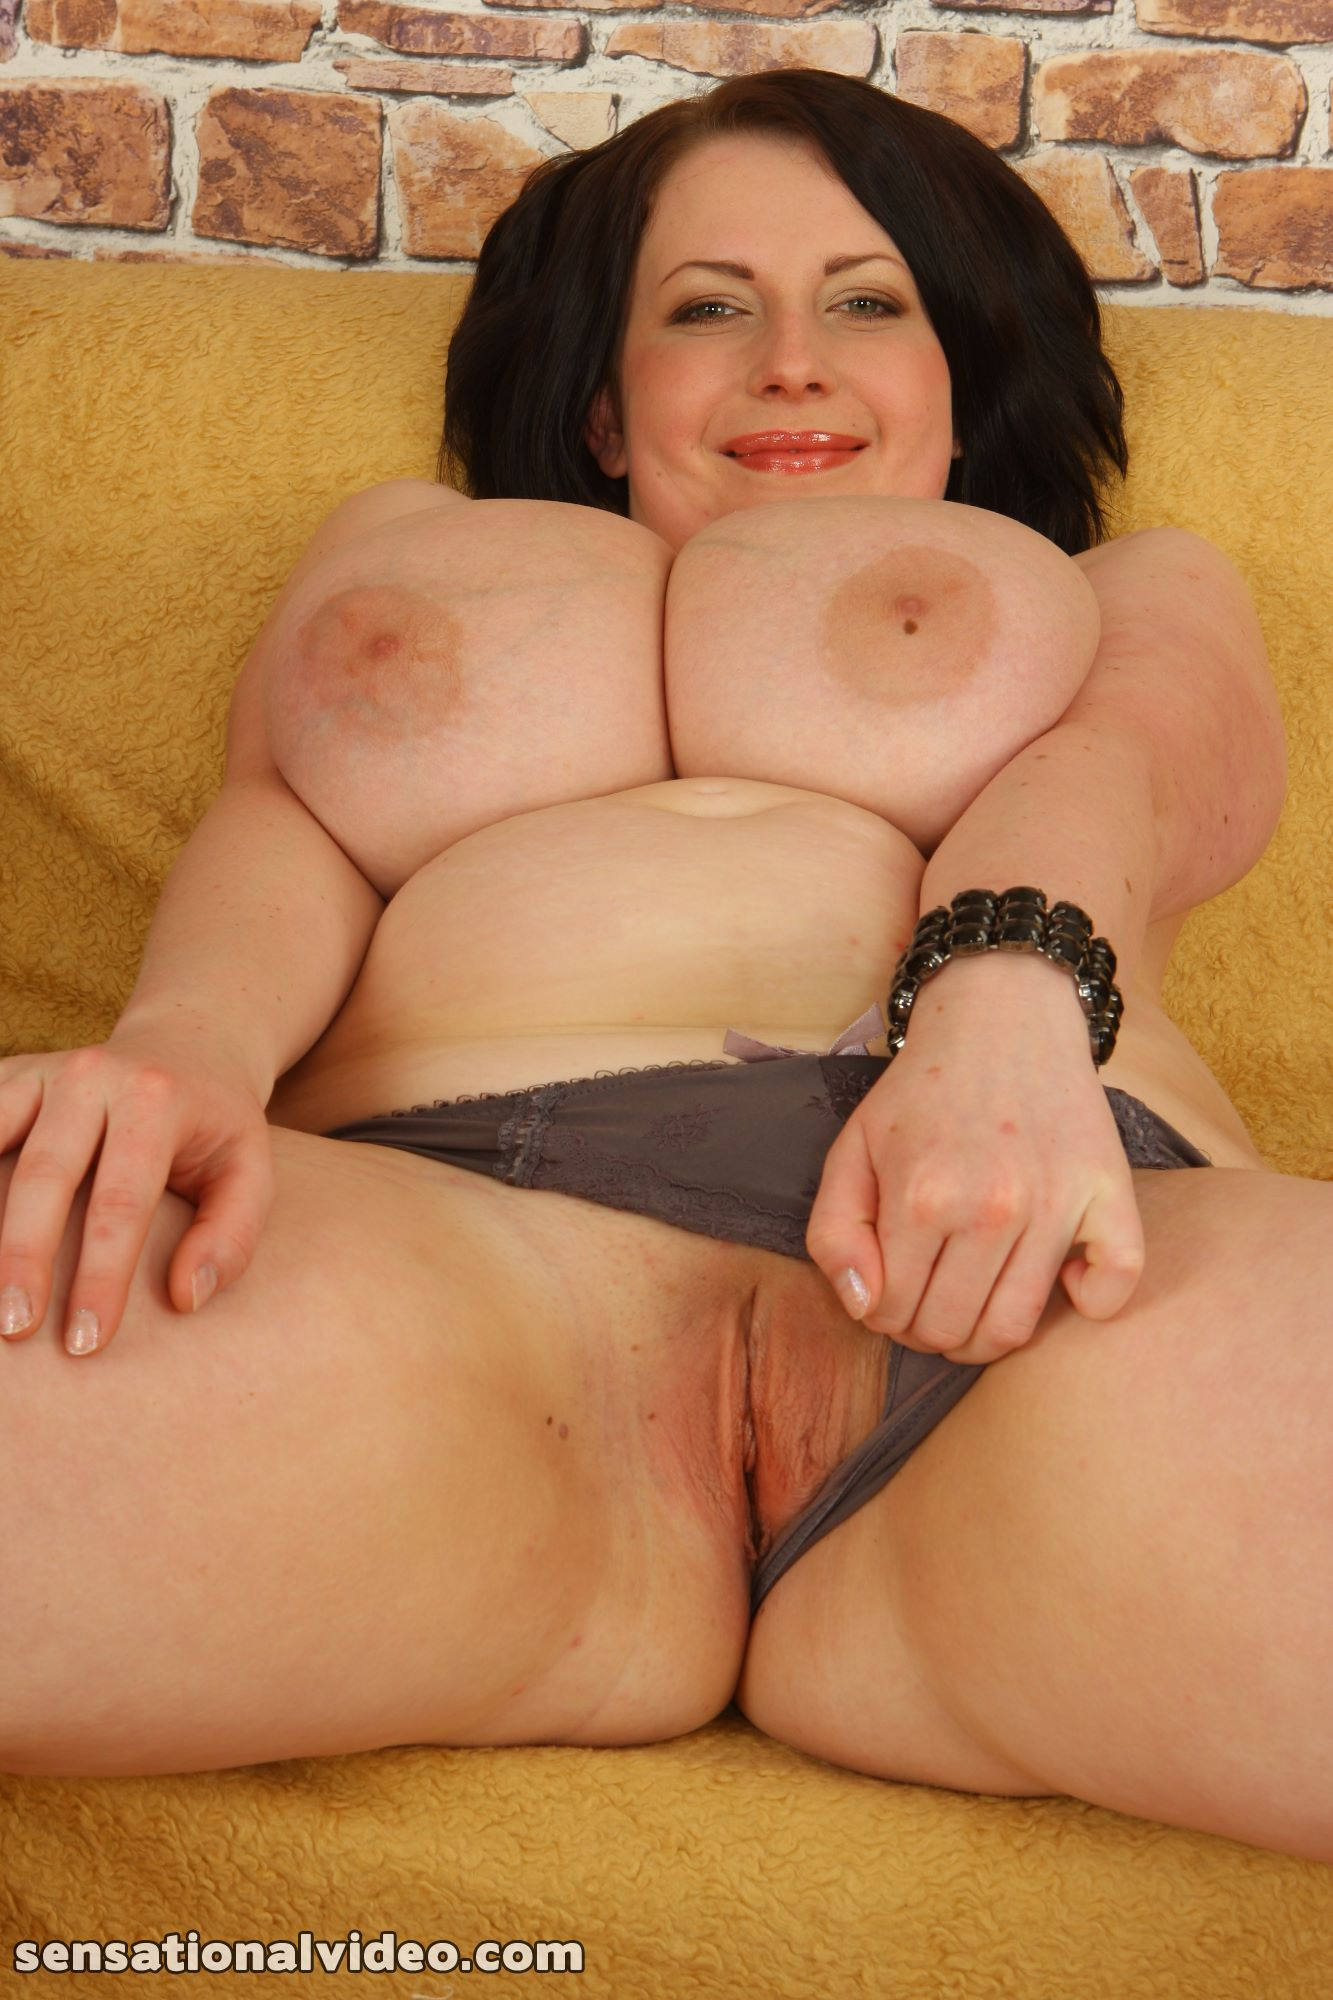 lesgalls spicytitties plumperpass gal535 pic 18